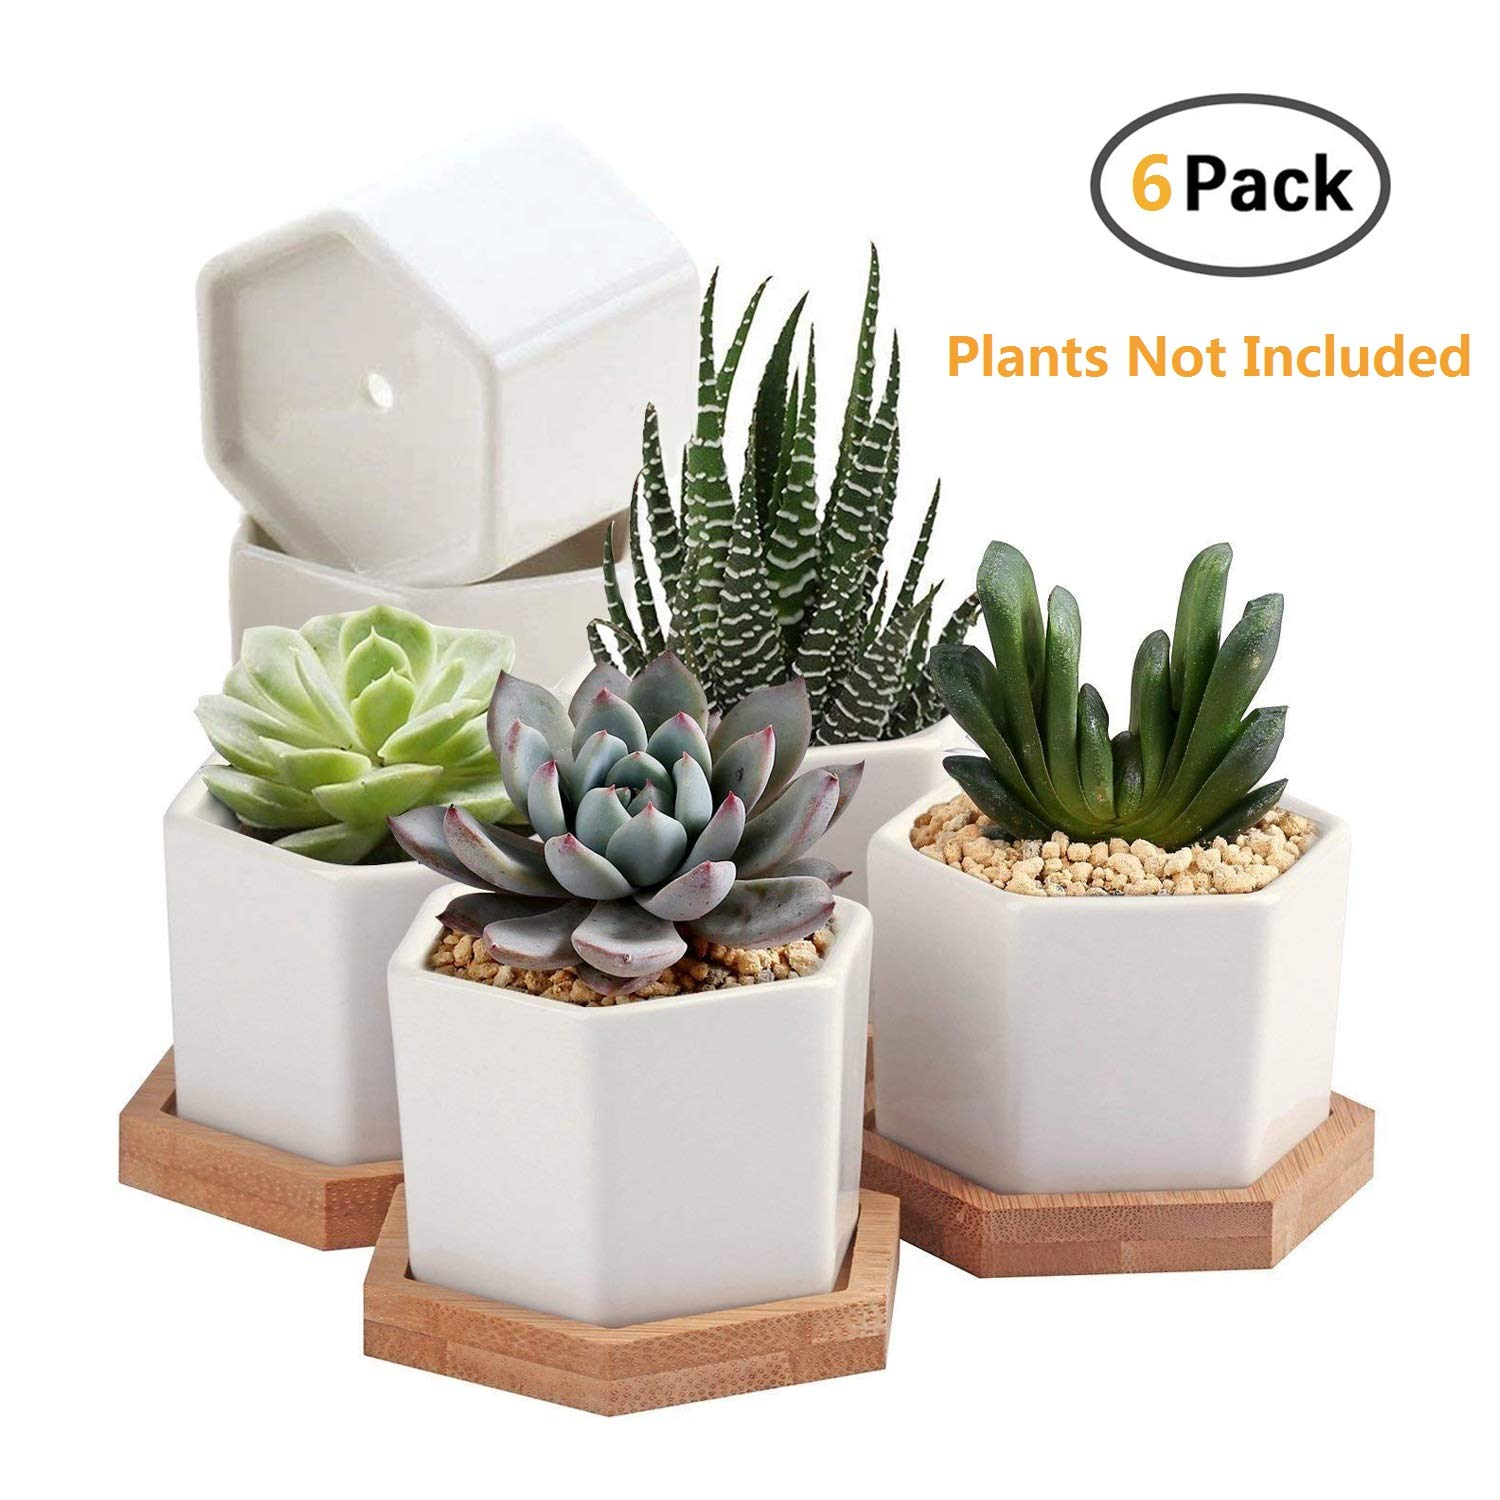 Succulent Pots,OAMCEG 2.75 inch Mini Succulent Plant Pots,Set of 6 White Ceramic Succulent Cactus Planter Pots with Bamboo Tray Plants NOT Included